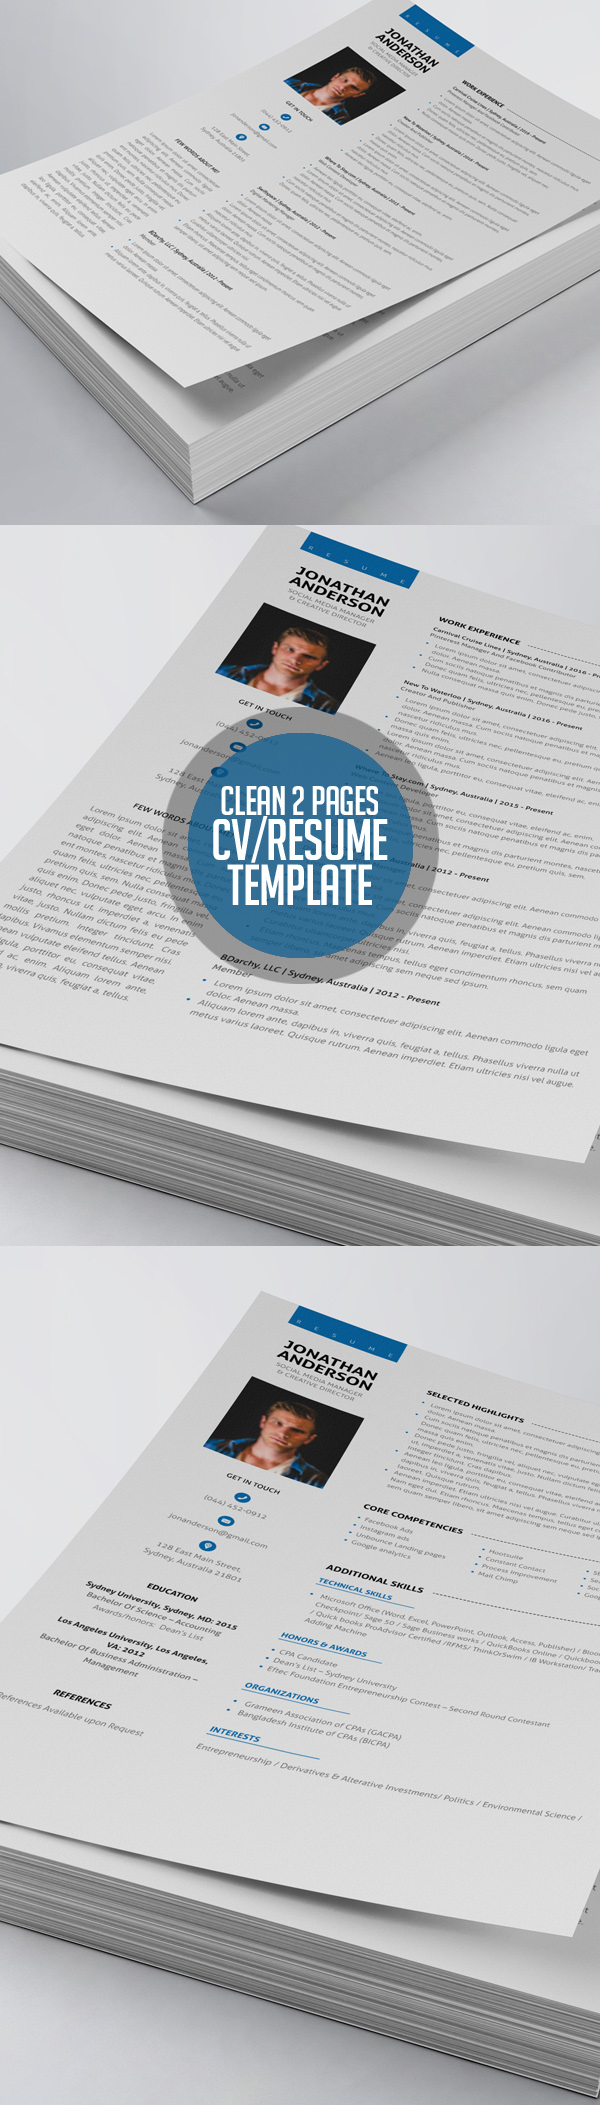 50 Best Resume Templates For 2018 - 28